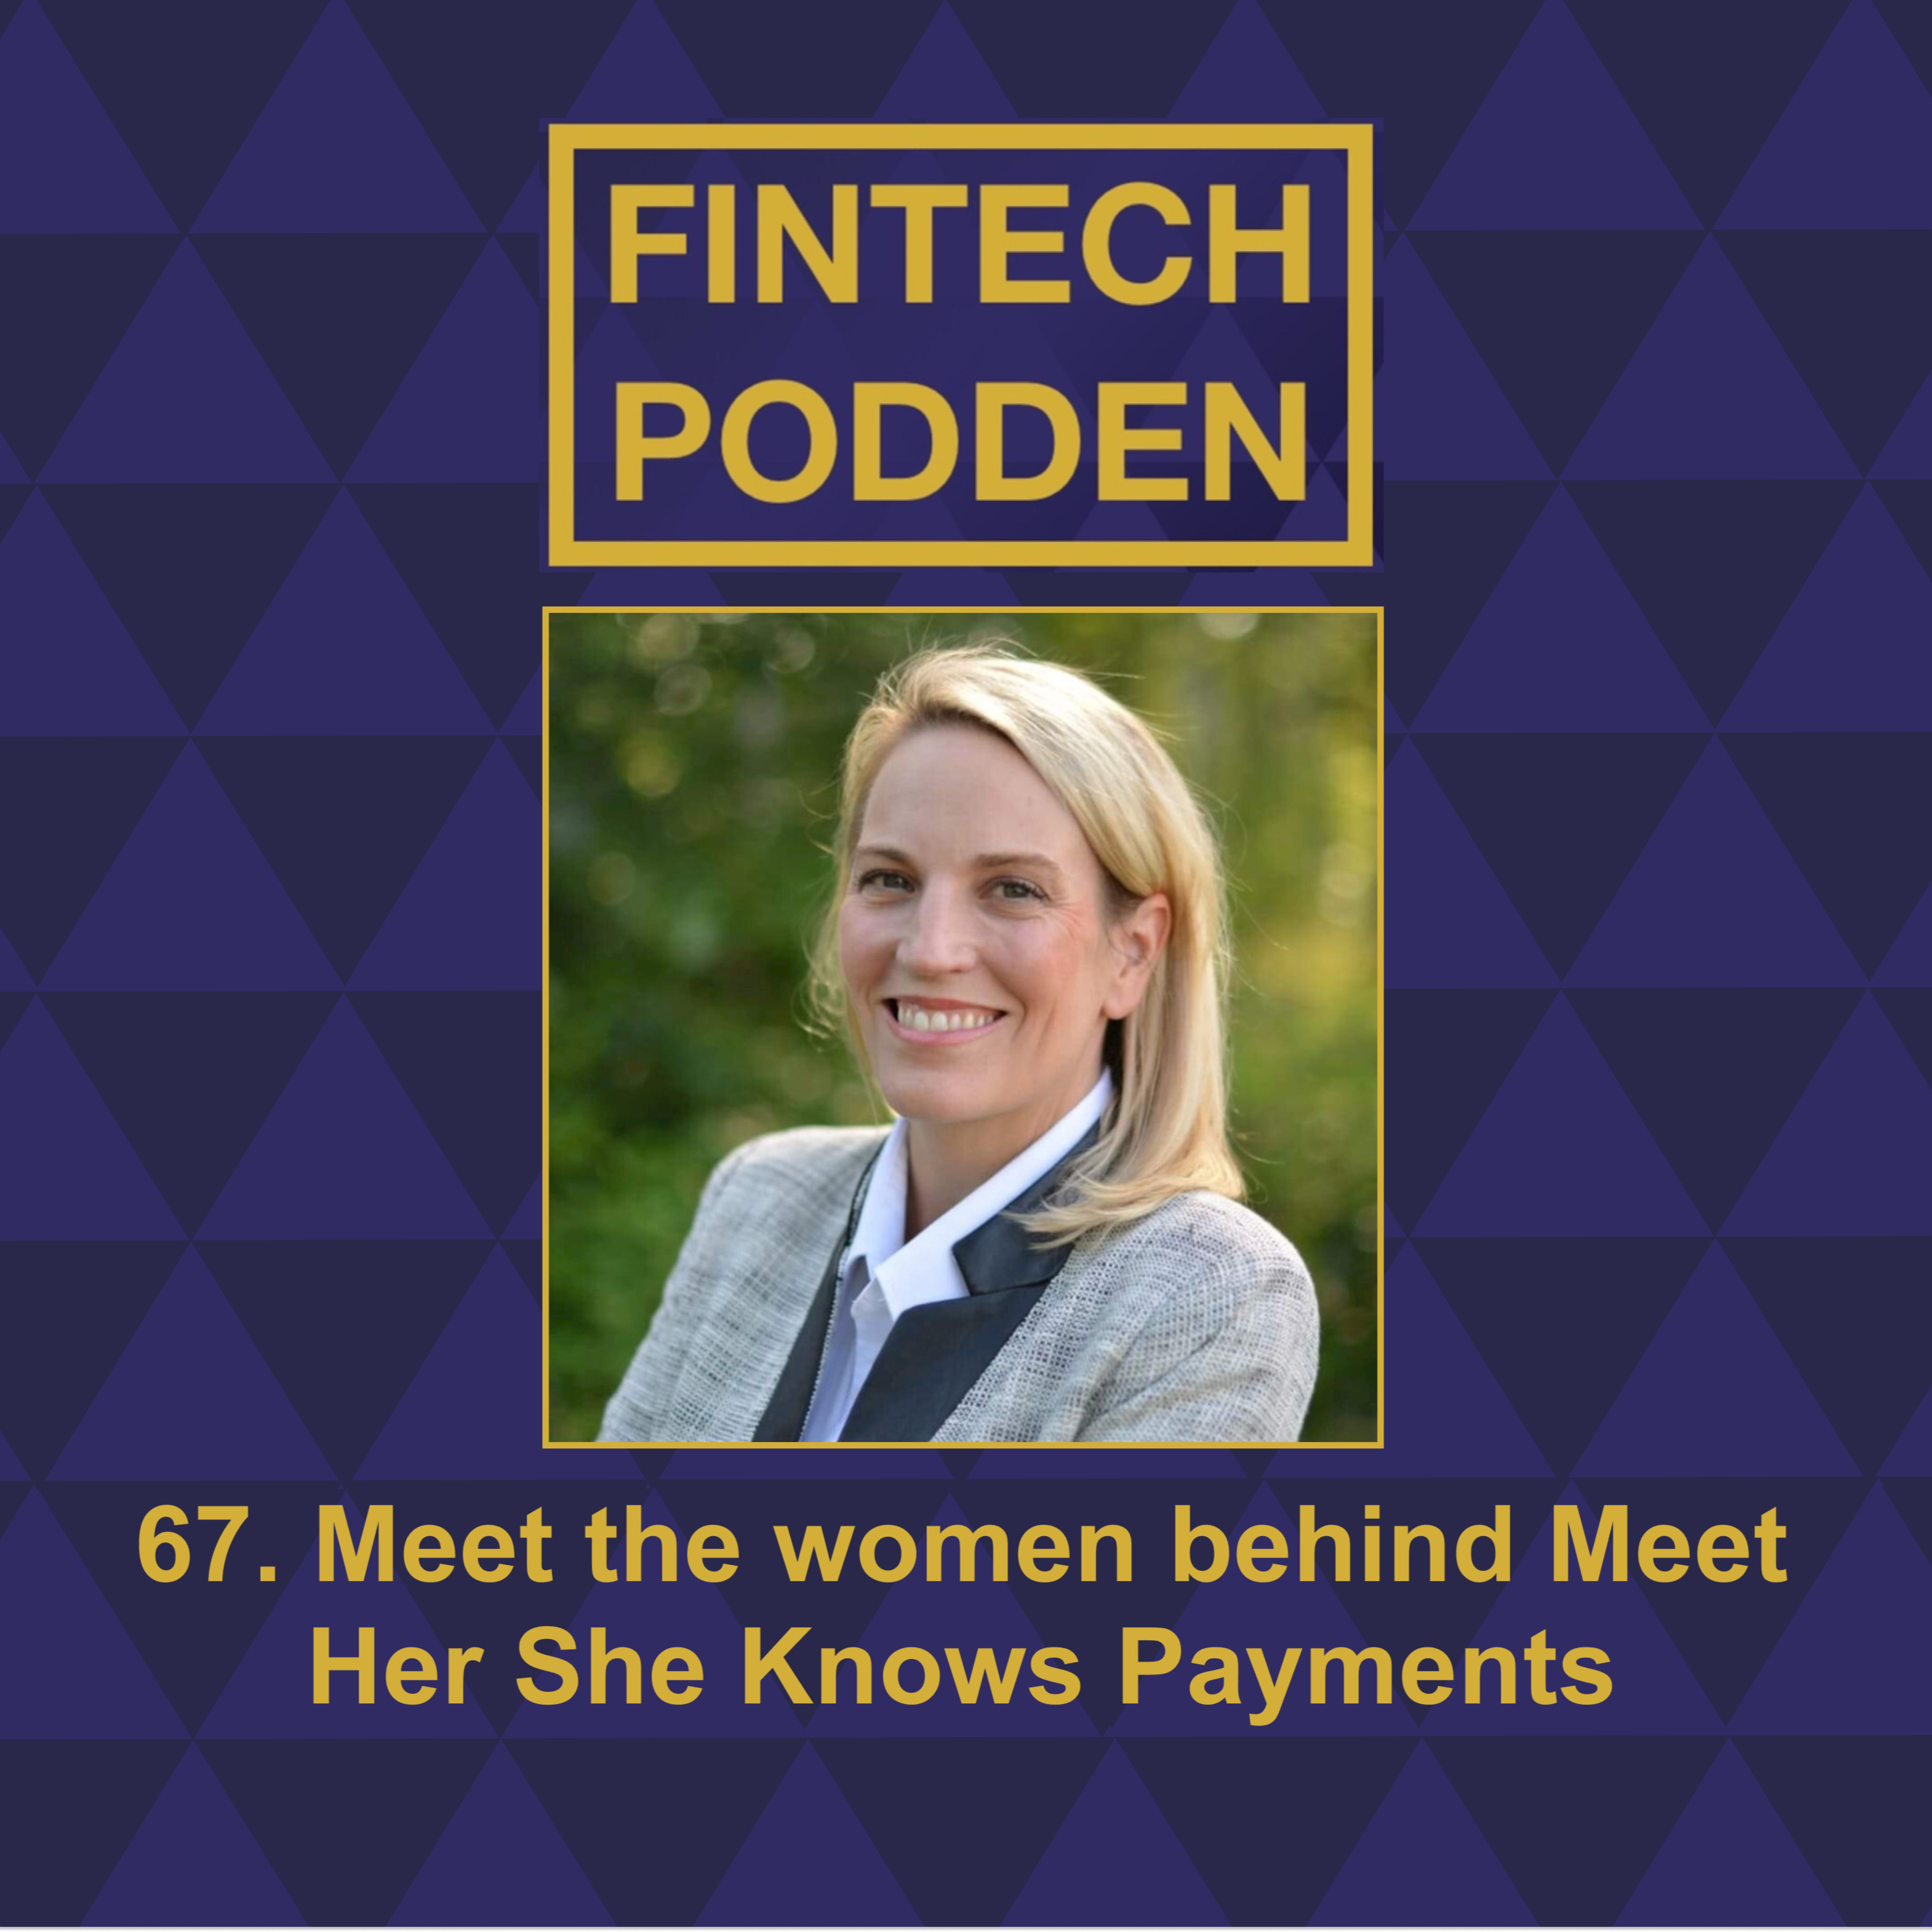 67. Meet the Women Behind Meet Her She Knows Payments